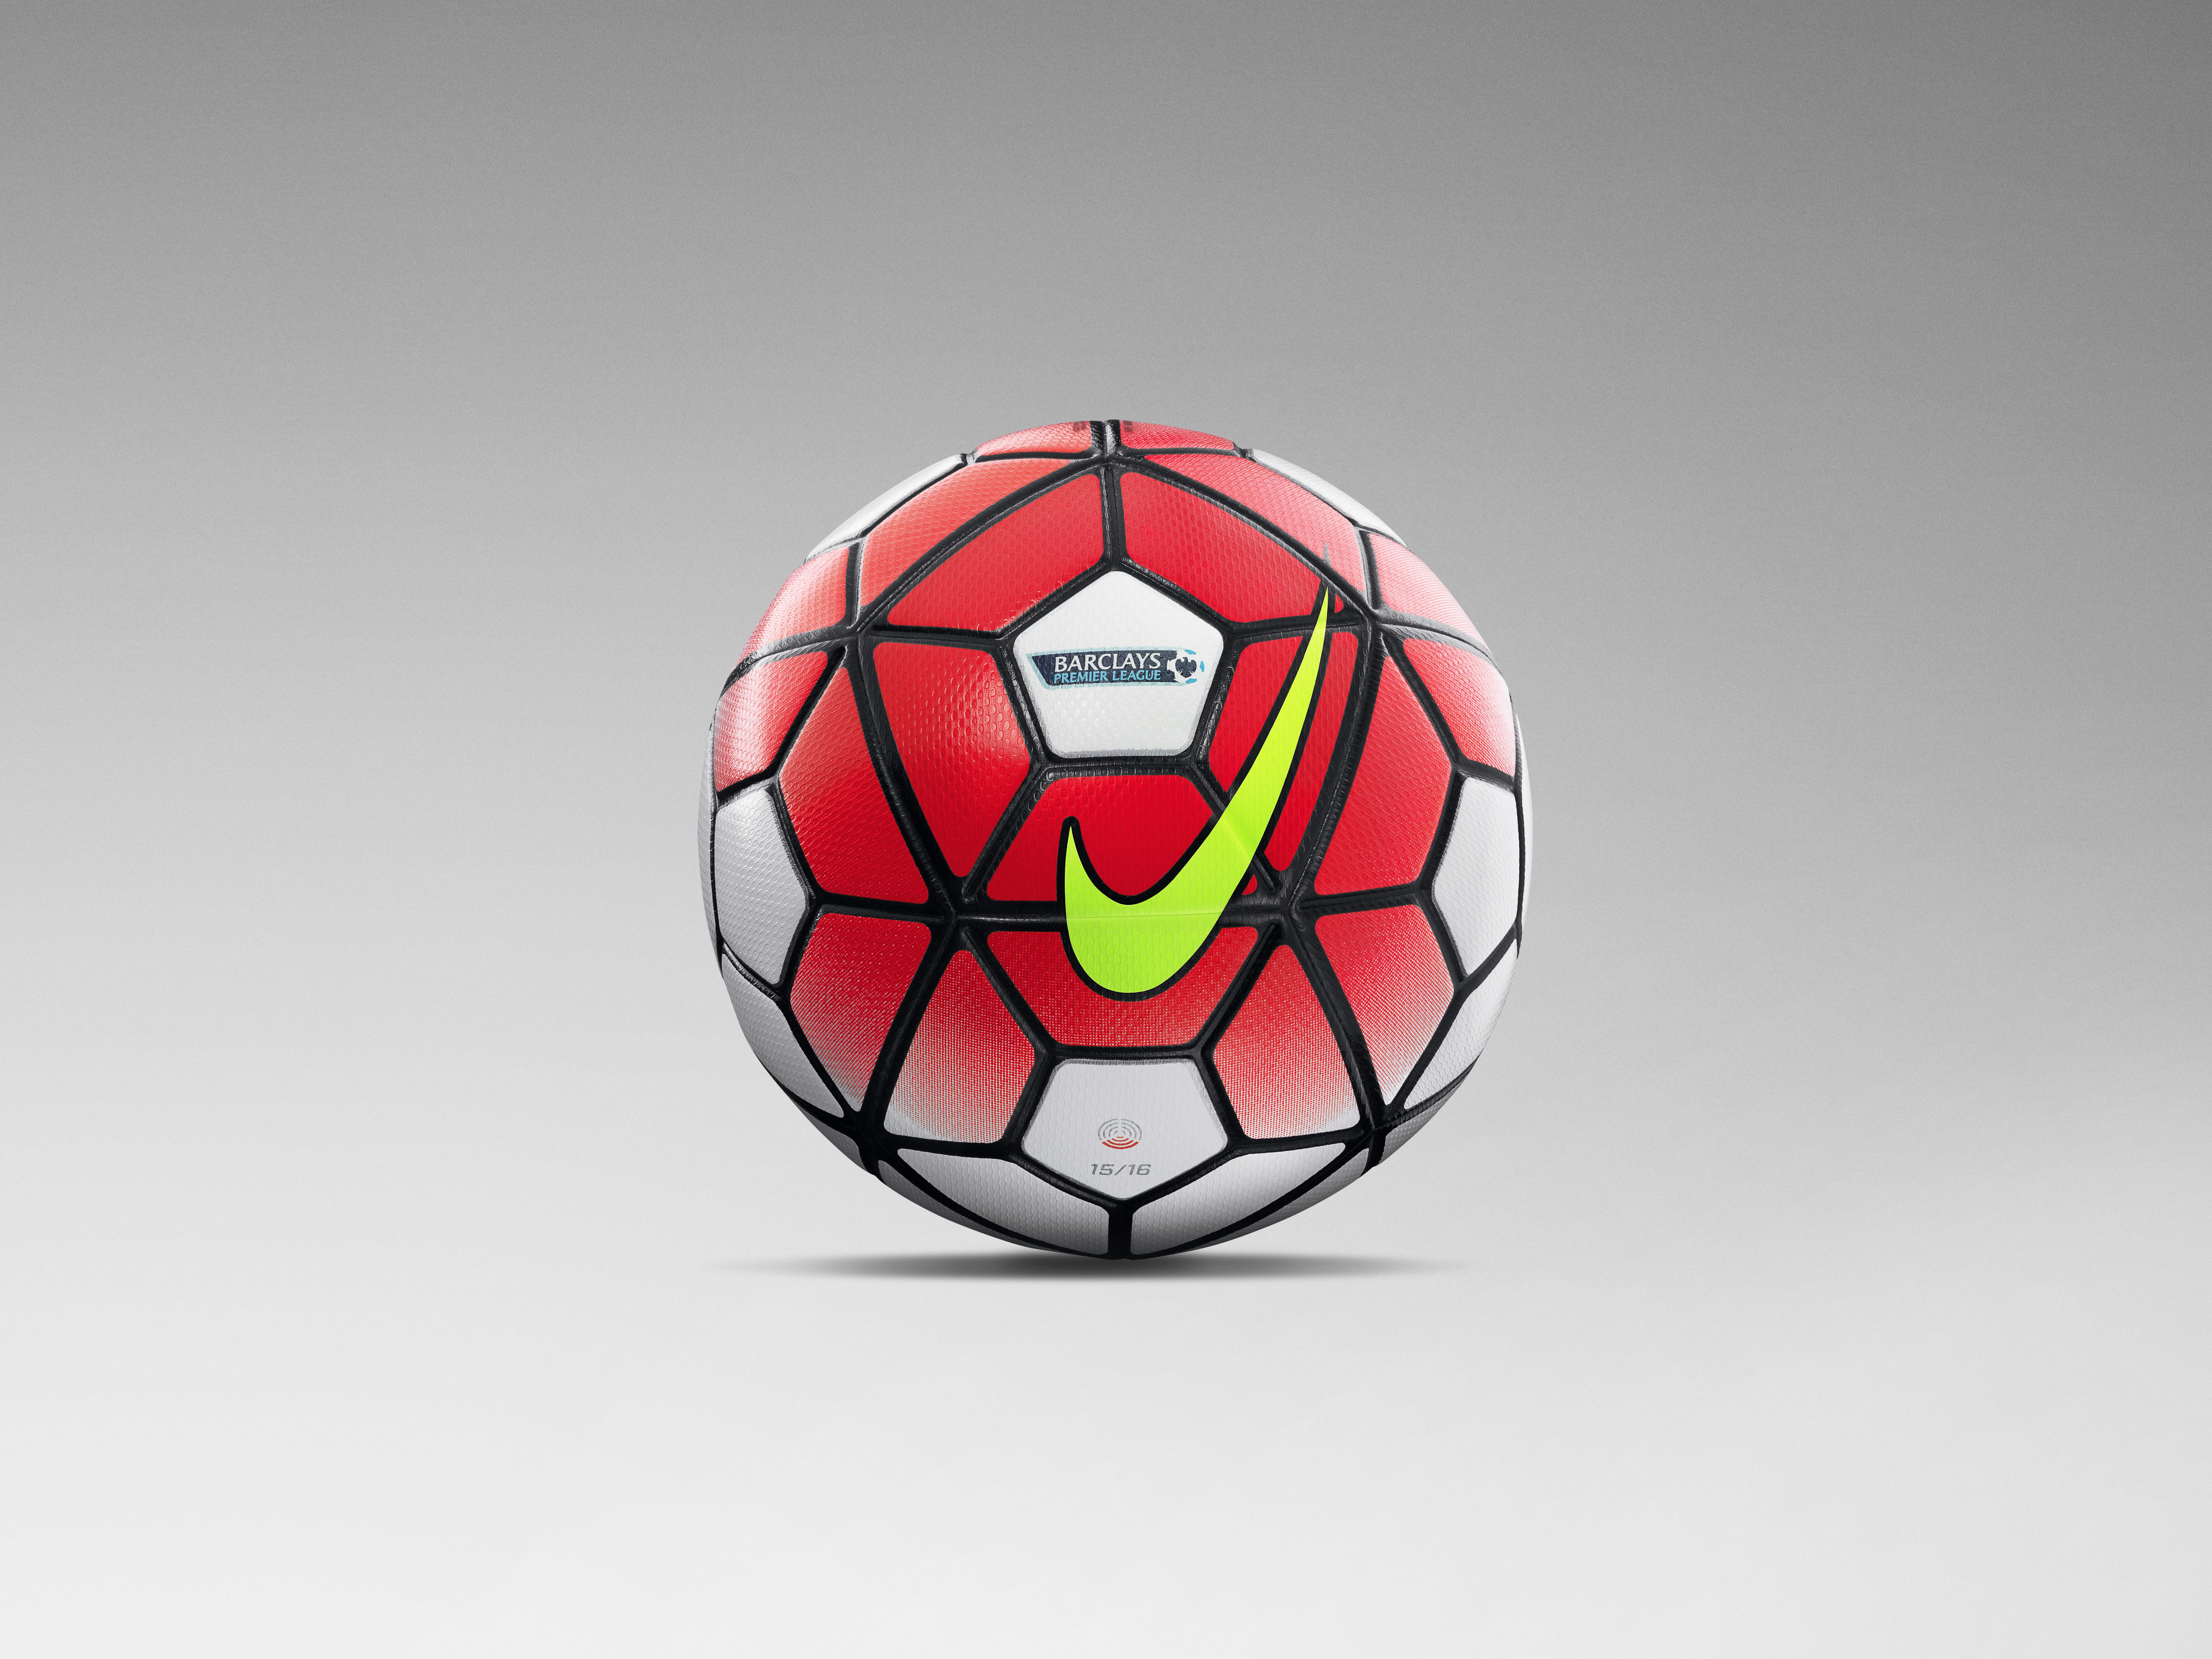 9648x7236 Nike Renews Premier League Partnership Through 2018 19 Season